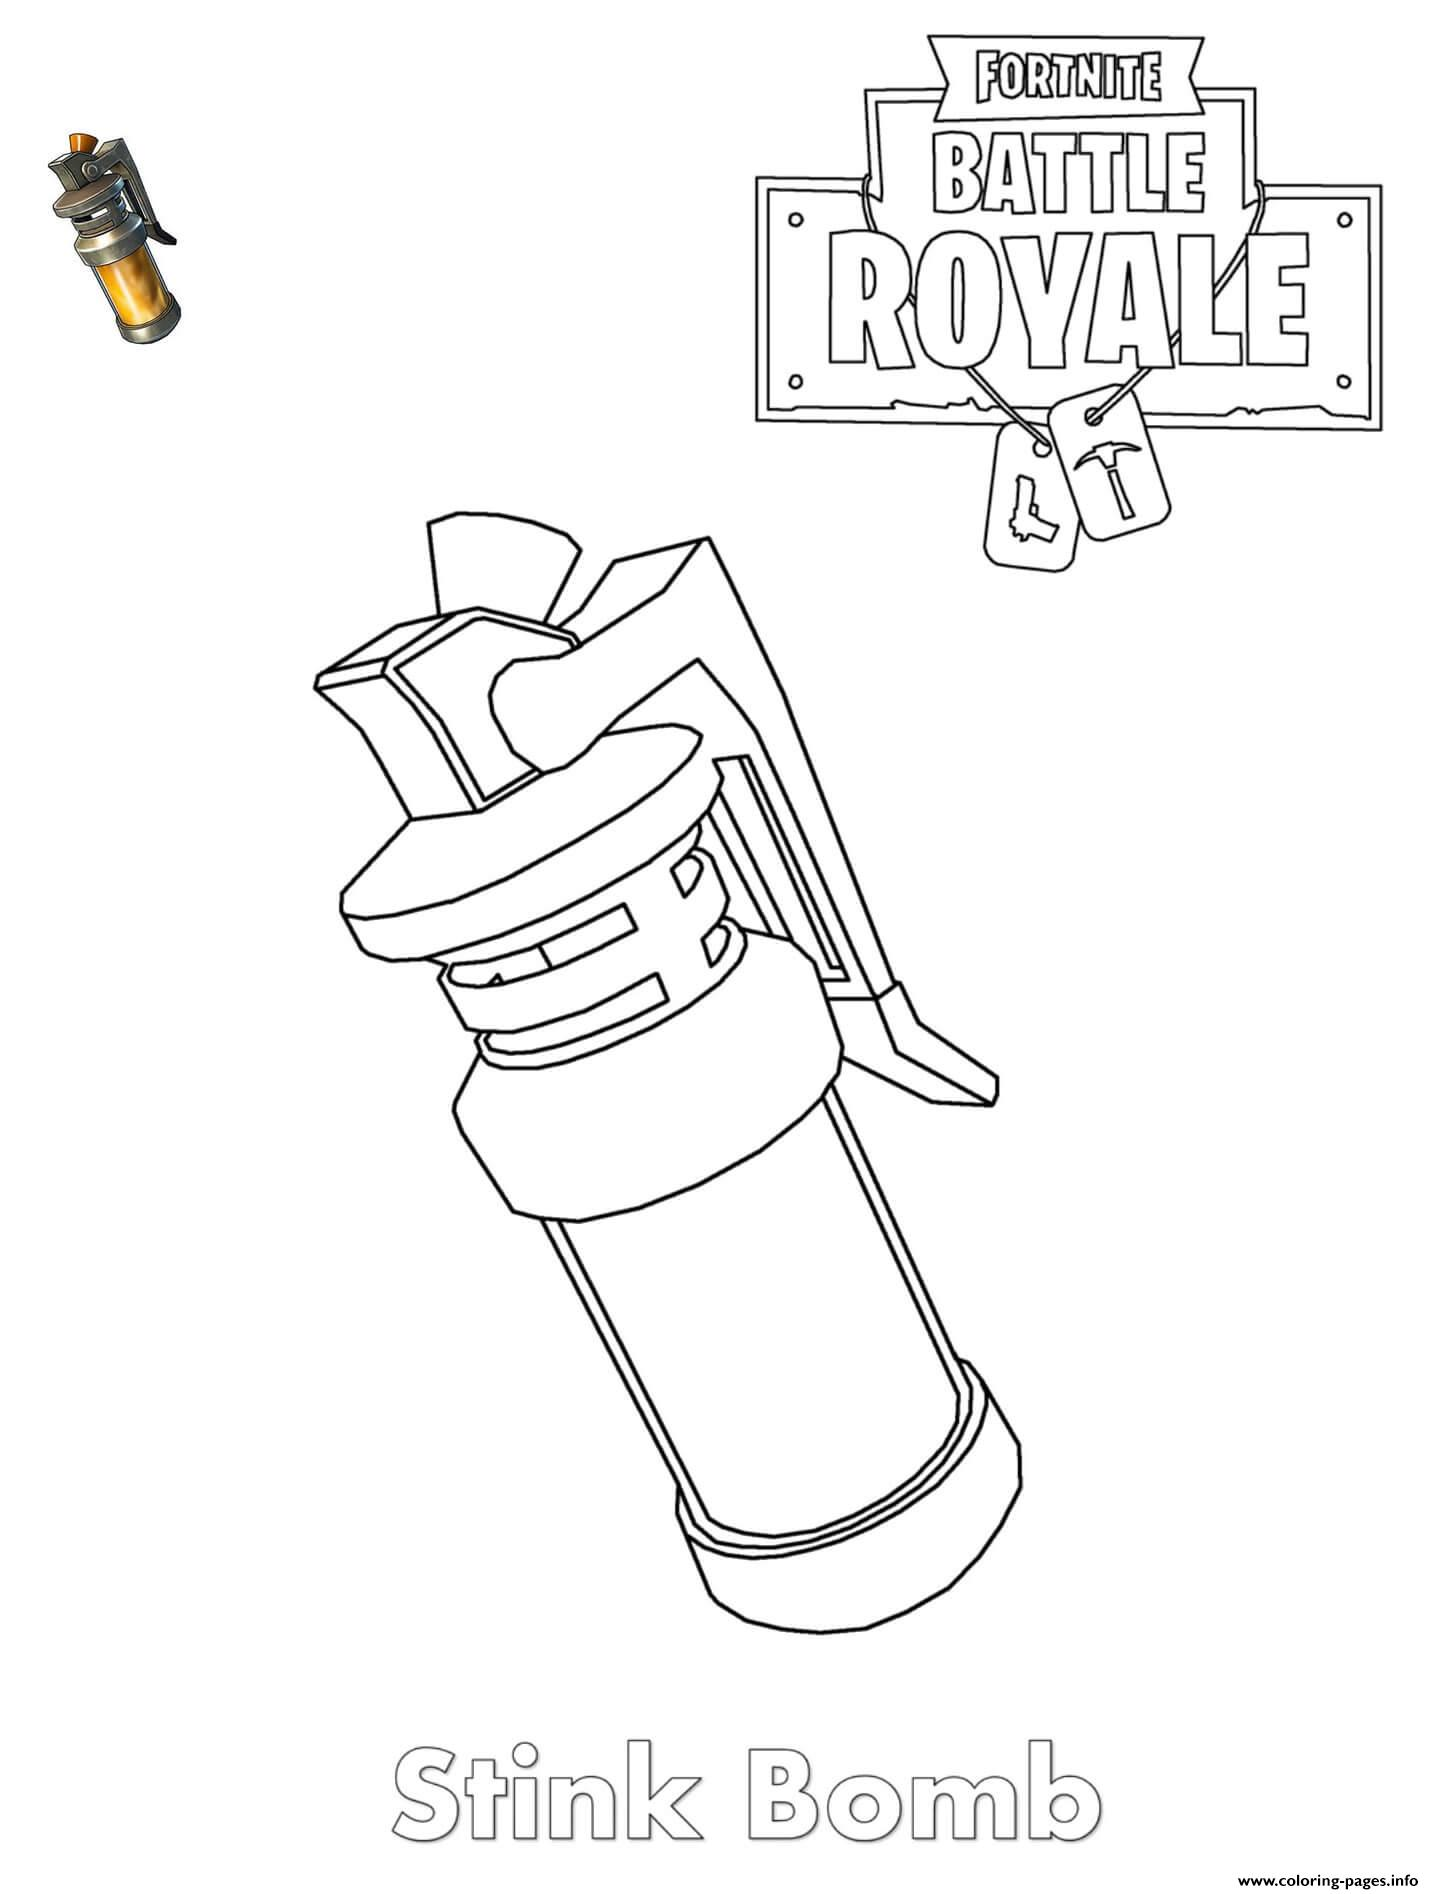 Stink Bomb Fortnite Item Coloring Pages Printable